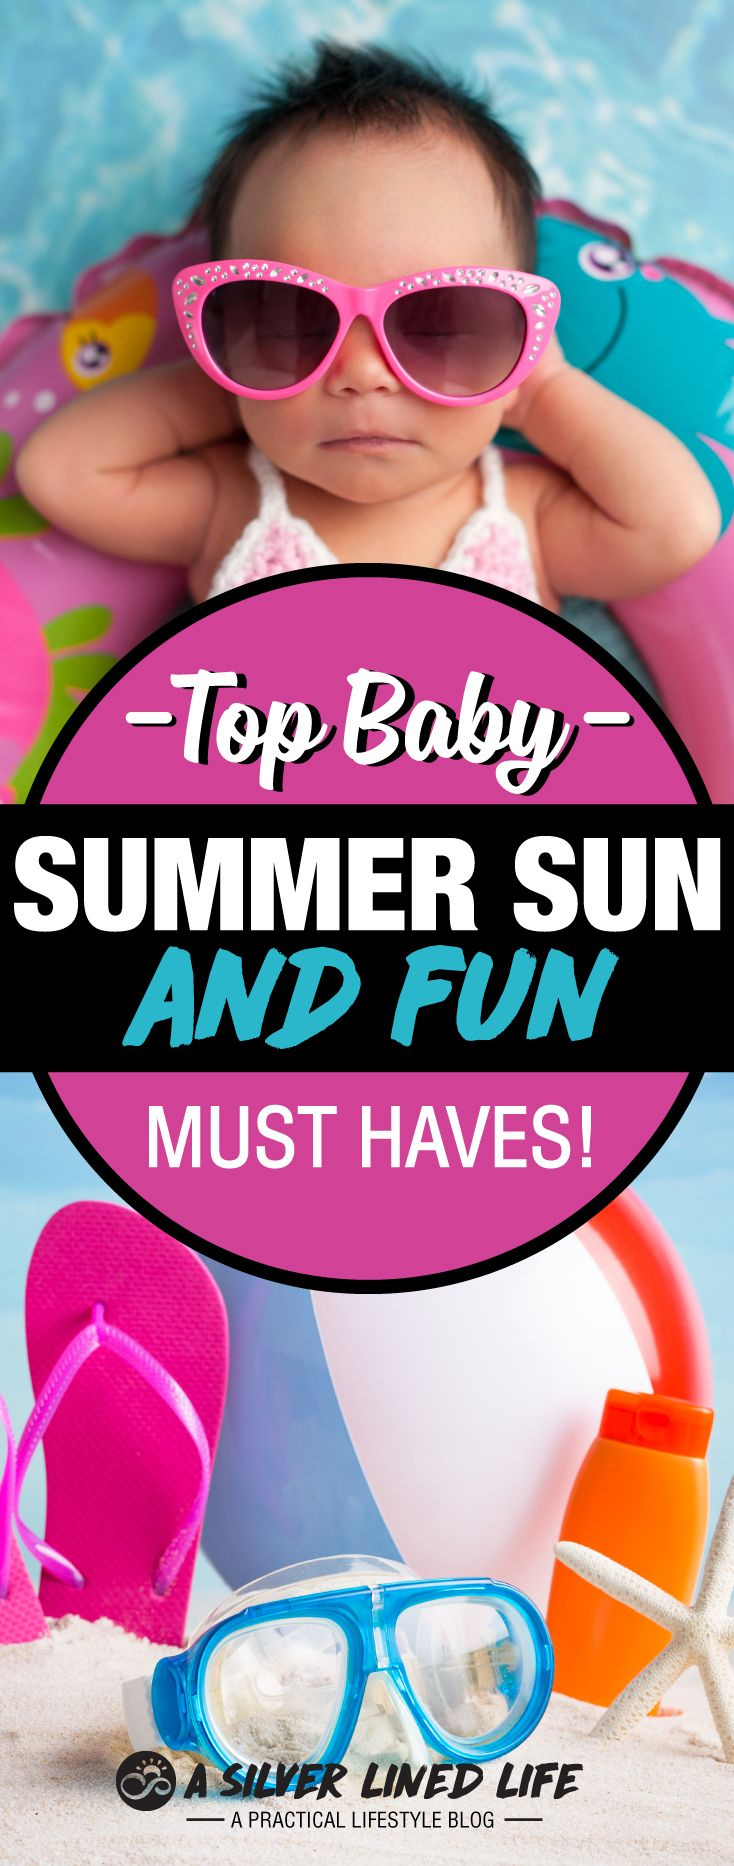 Top Baby Summer Sun & Fun, Must Haves! The best baby stuff you need for summer and protecting your little one from the sun. Everything from swimsuits and sunscreen to floats and sunglasses. Check it out!